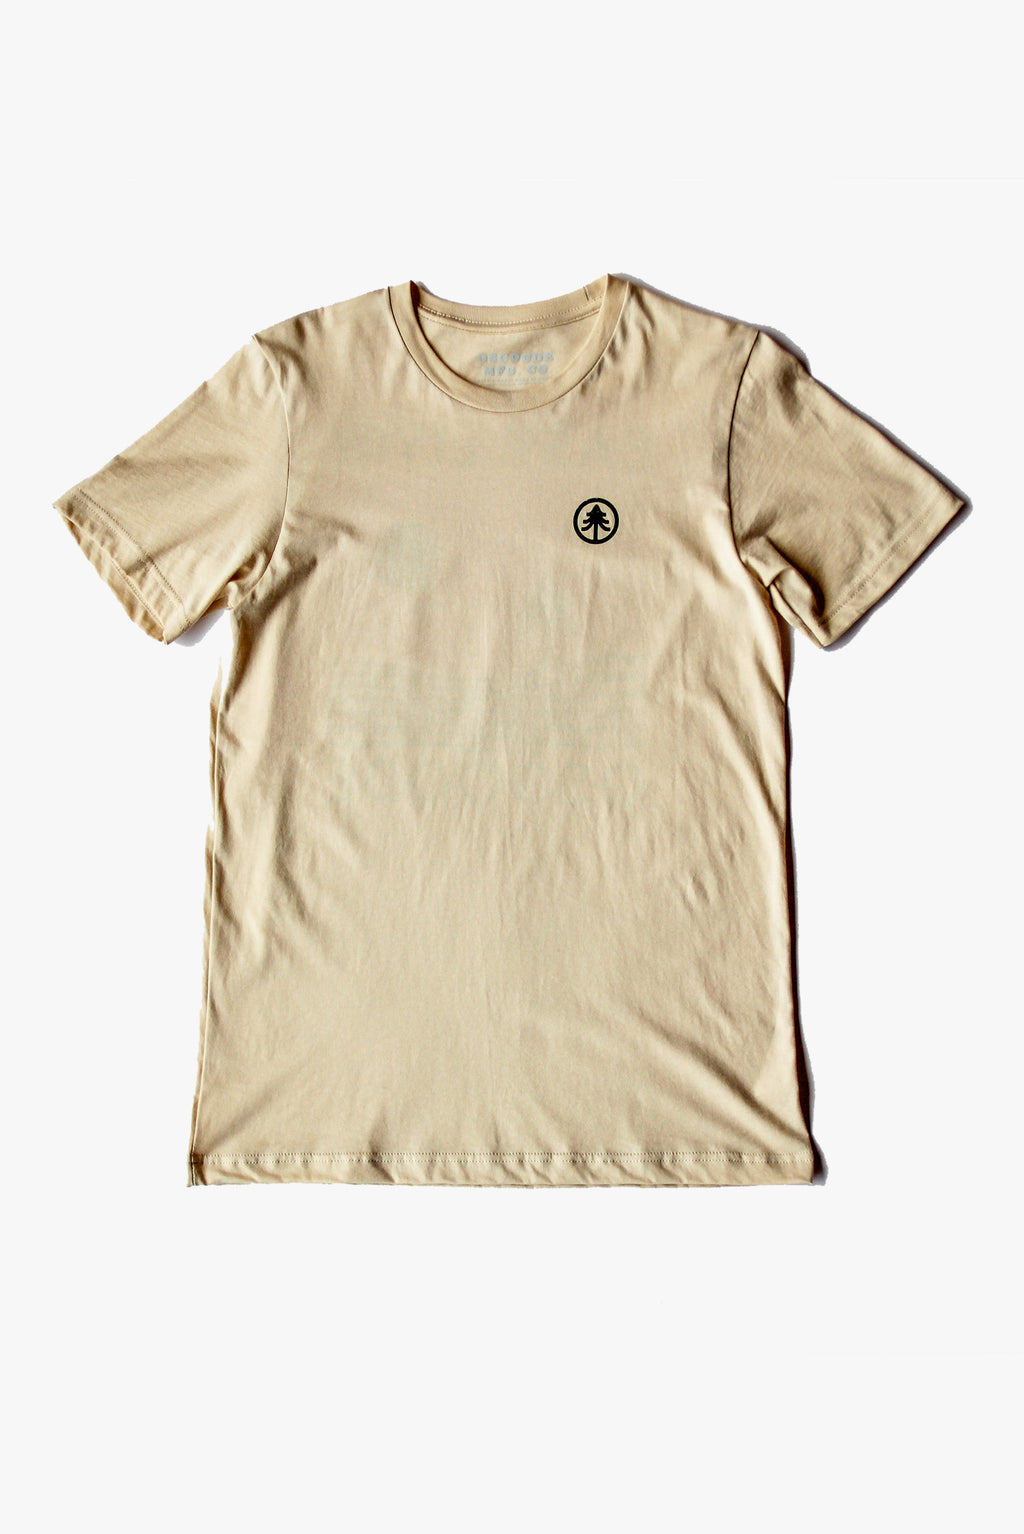 GOIN COASTAL T-SHIRT NATURAL